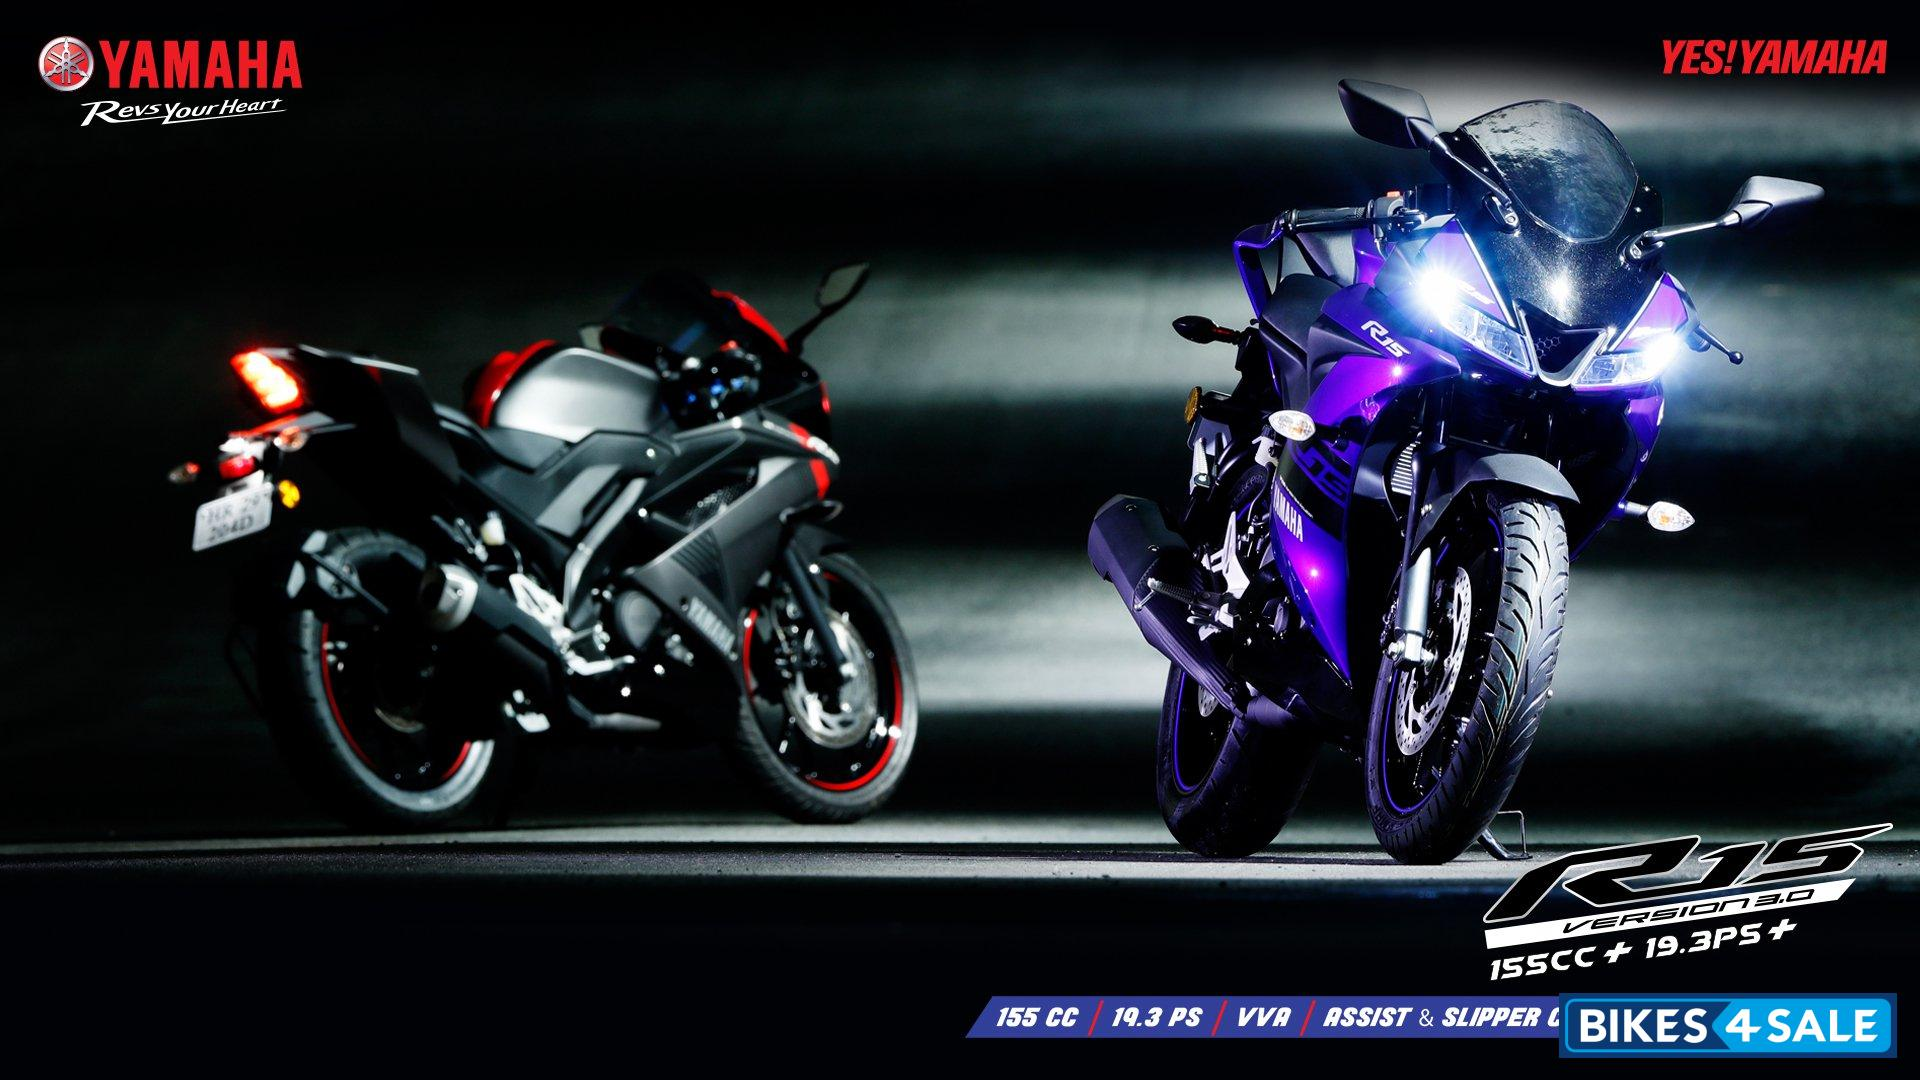 Photo 5 Yamaha Yzf R15 V3 Motorcycle Picture Gallery Bikes4sale